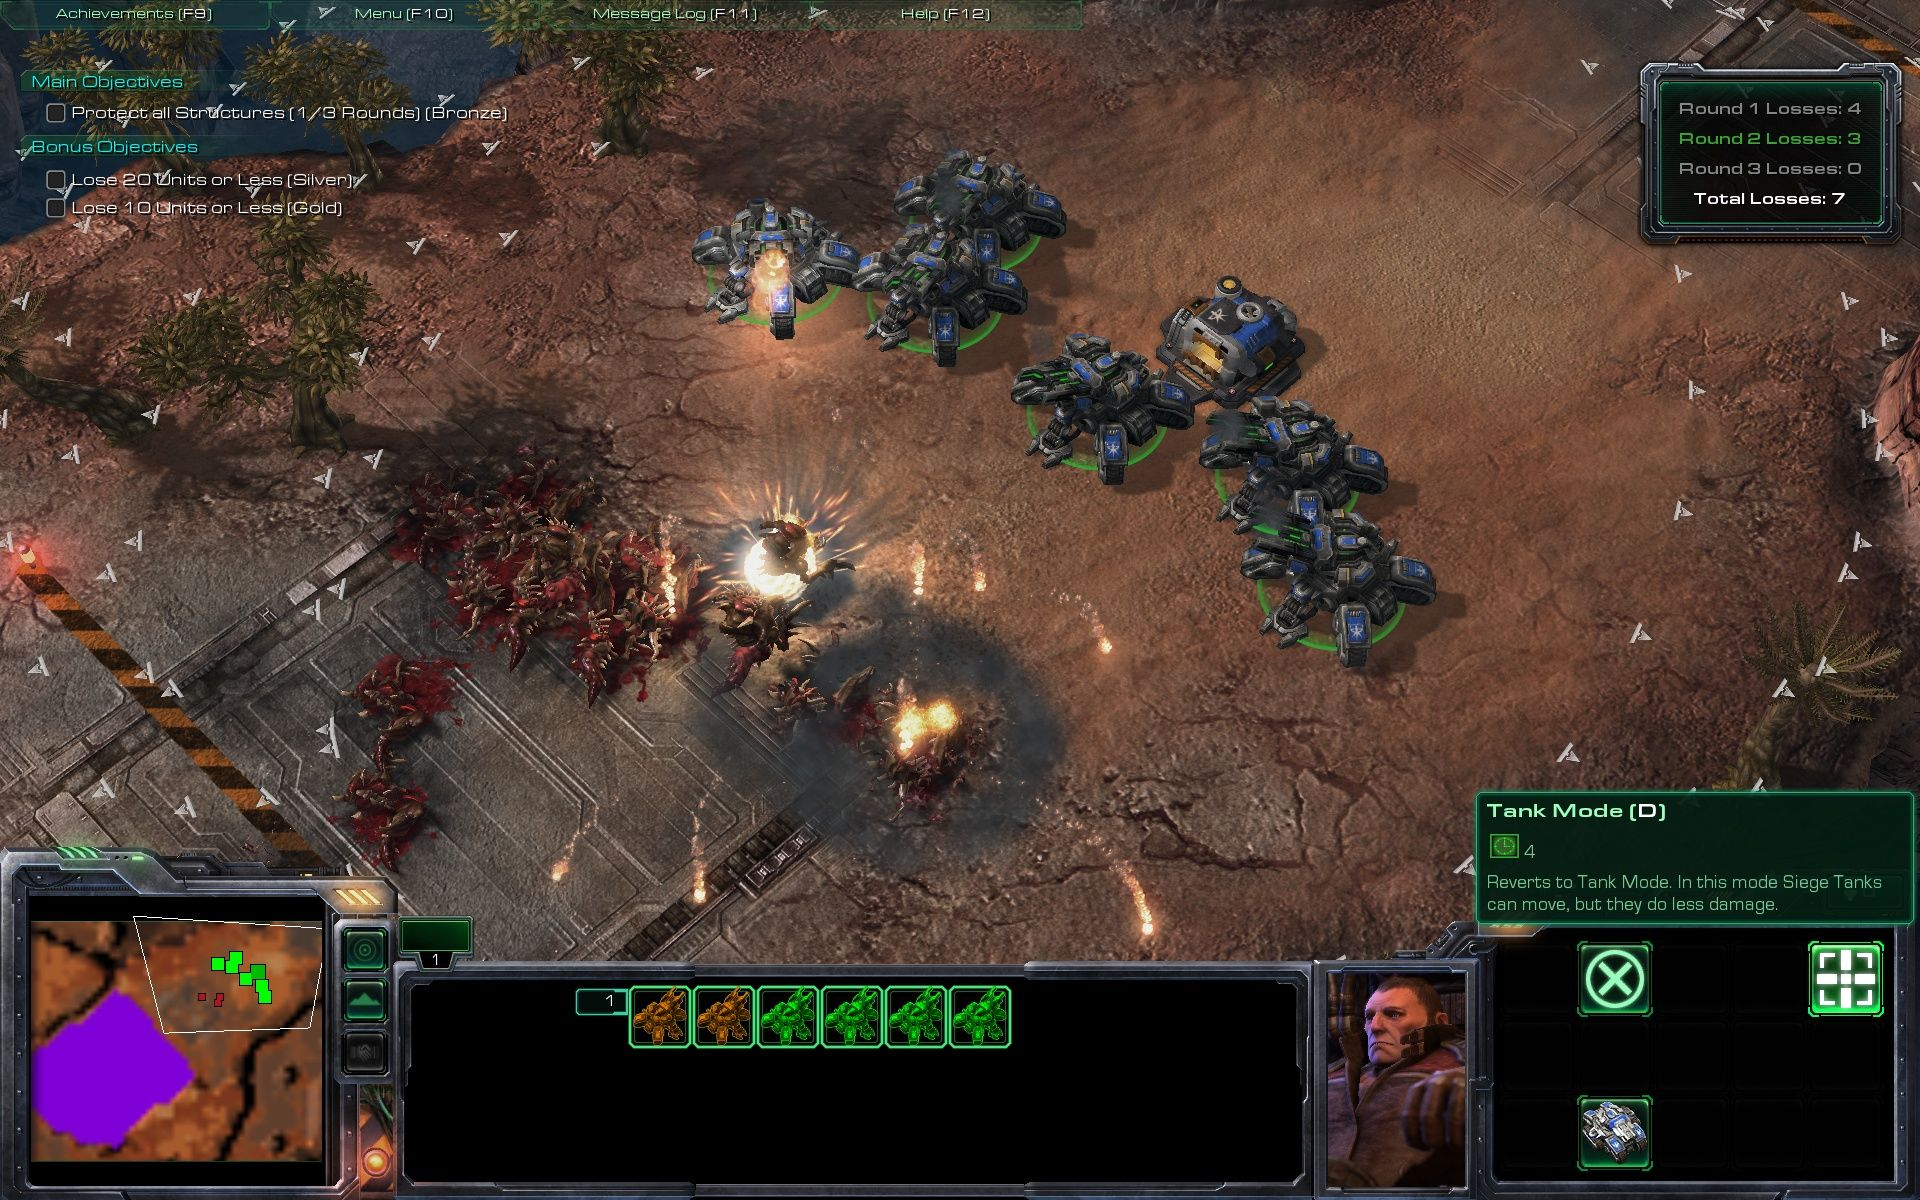 StarCraft II: Wings of Liberty Windows Challenges: The challenges are used to prepare you for multiplayer.